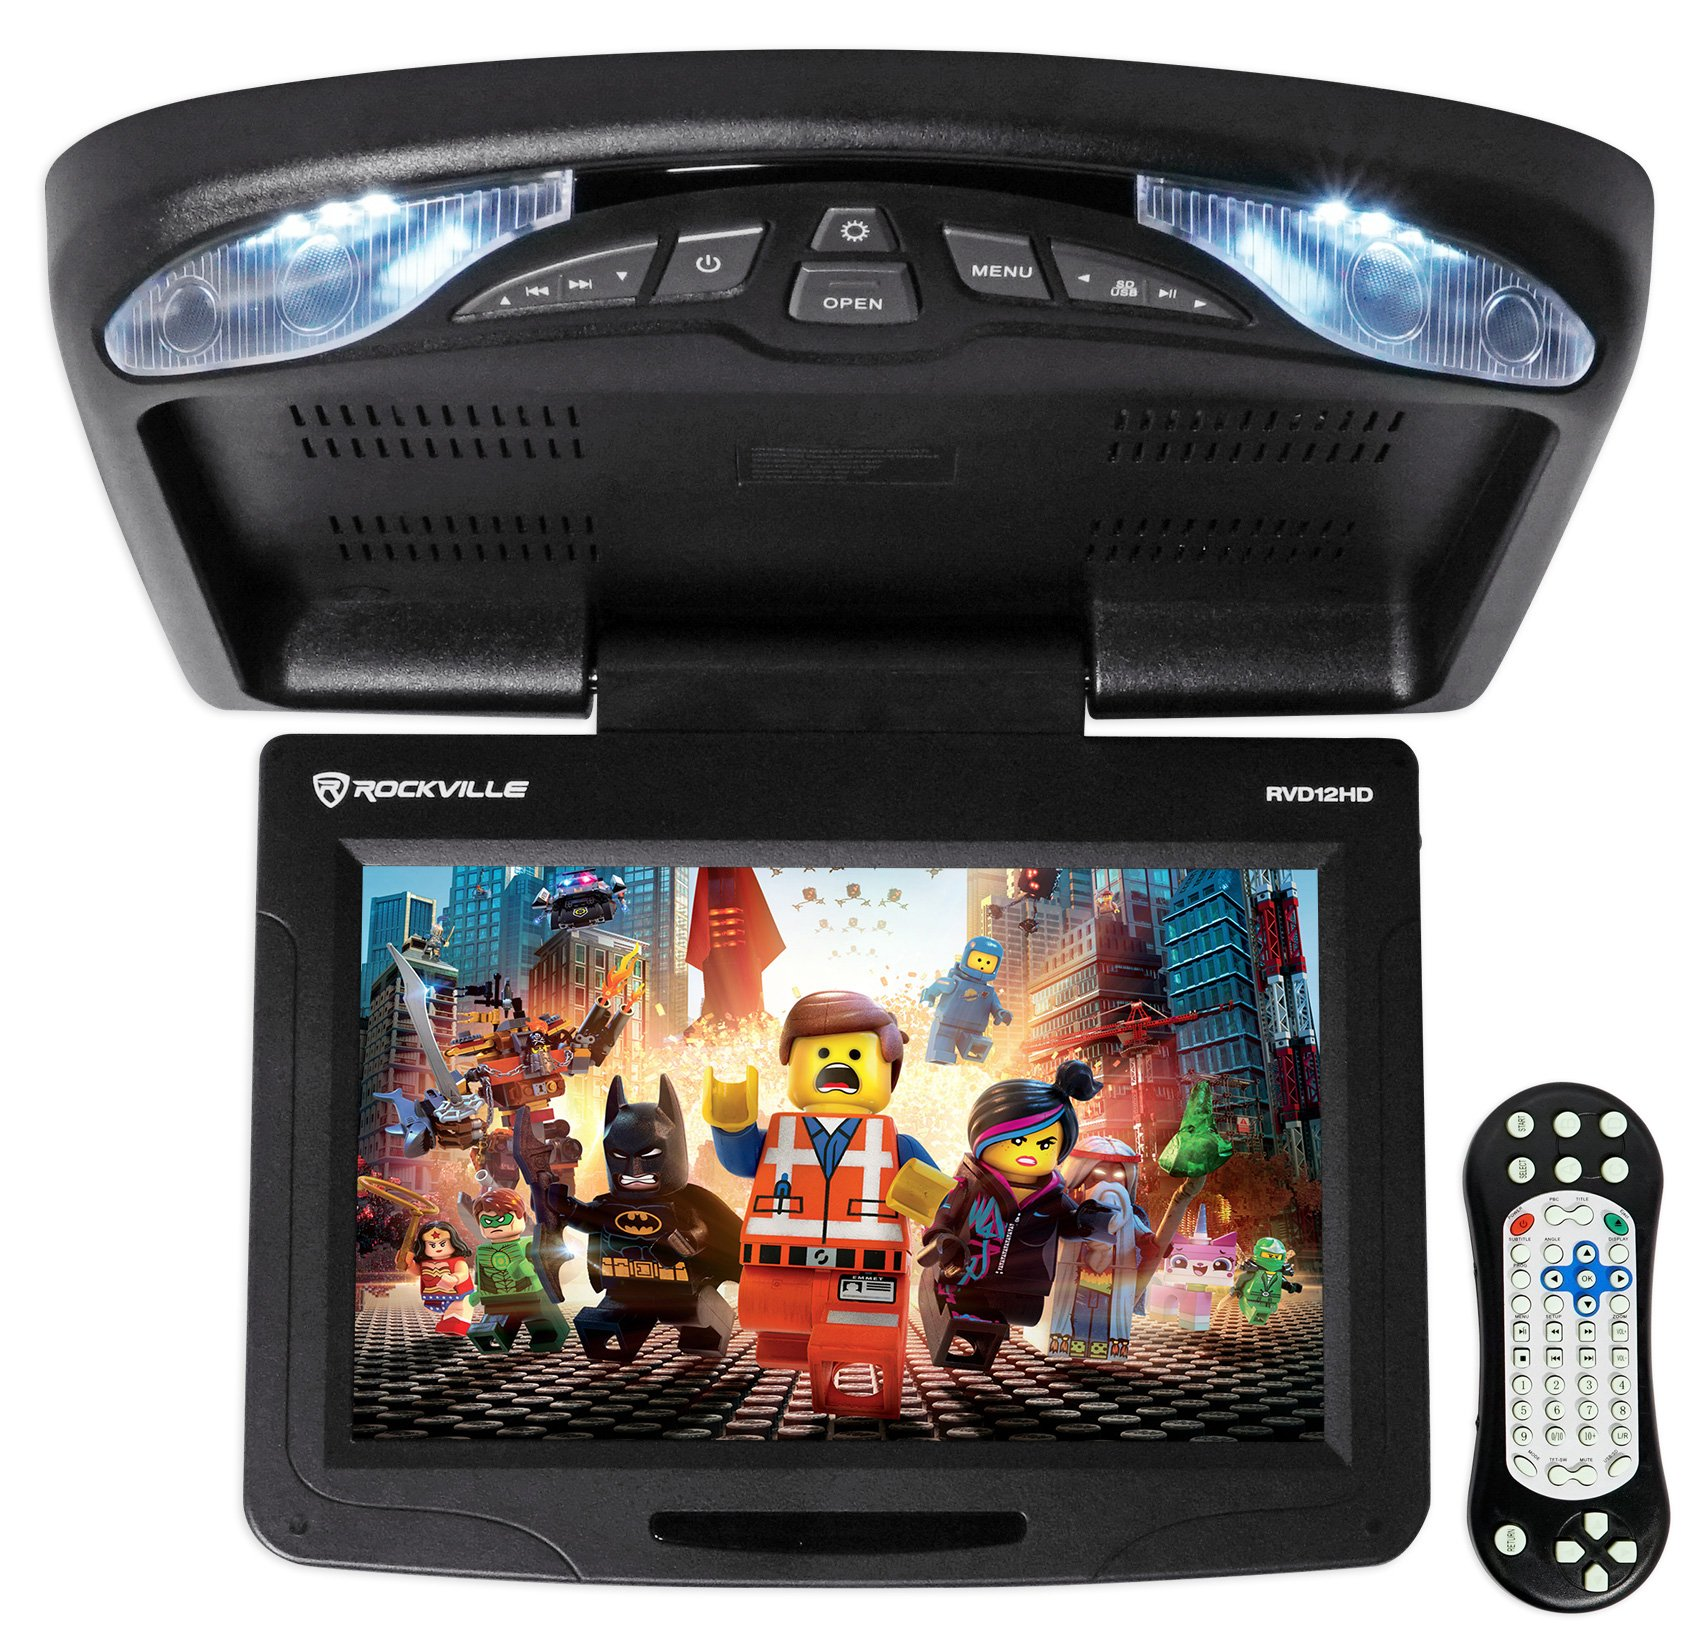 Rockville RVD12HD-BK 12'' Black Flip Down Car Monitor DVD/USB/SD Player + Games